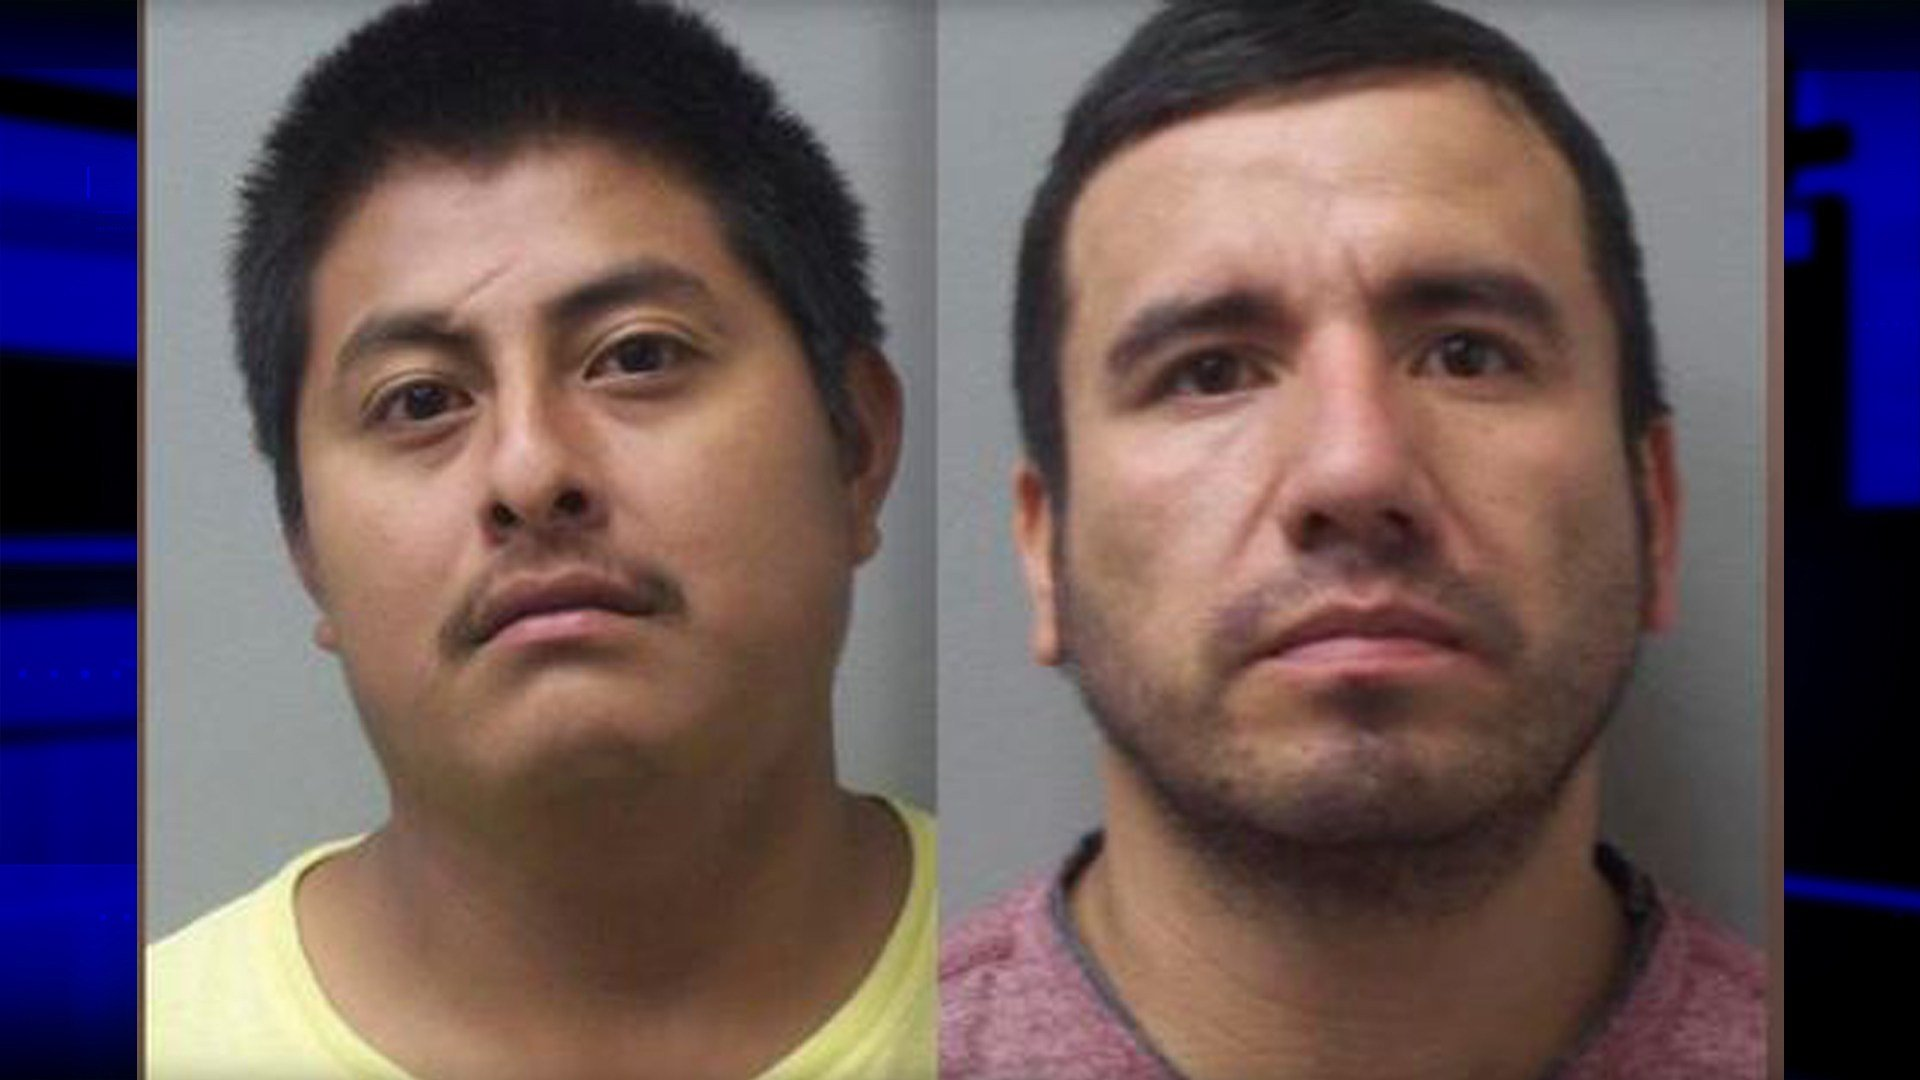 Yoni Aguilar (left) and Israel Palomino (right) booking photo:  Madison County Sheriff's Office